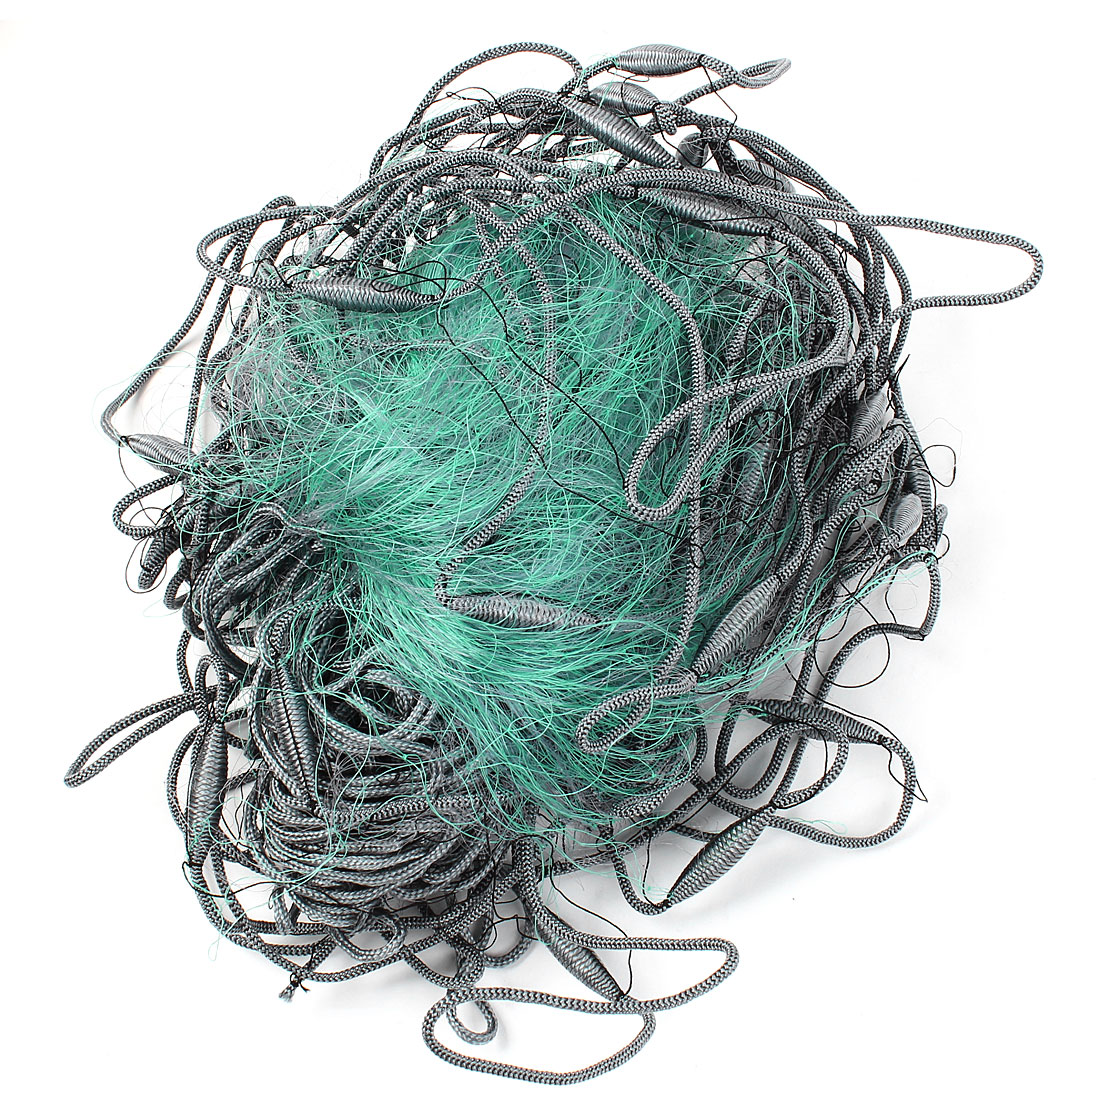 Gillnetting 3 Layers 6 x 6cm Mesh 30m x 1.3M Green Fishing Gill Net